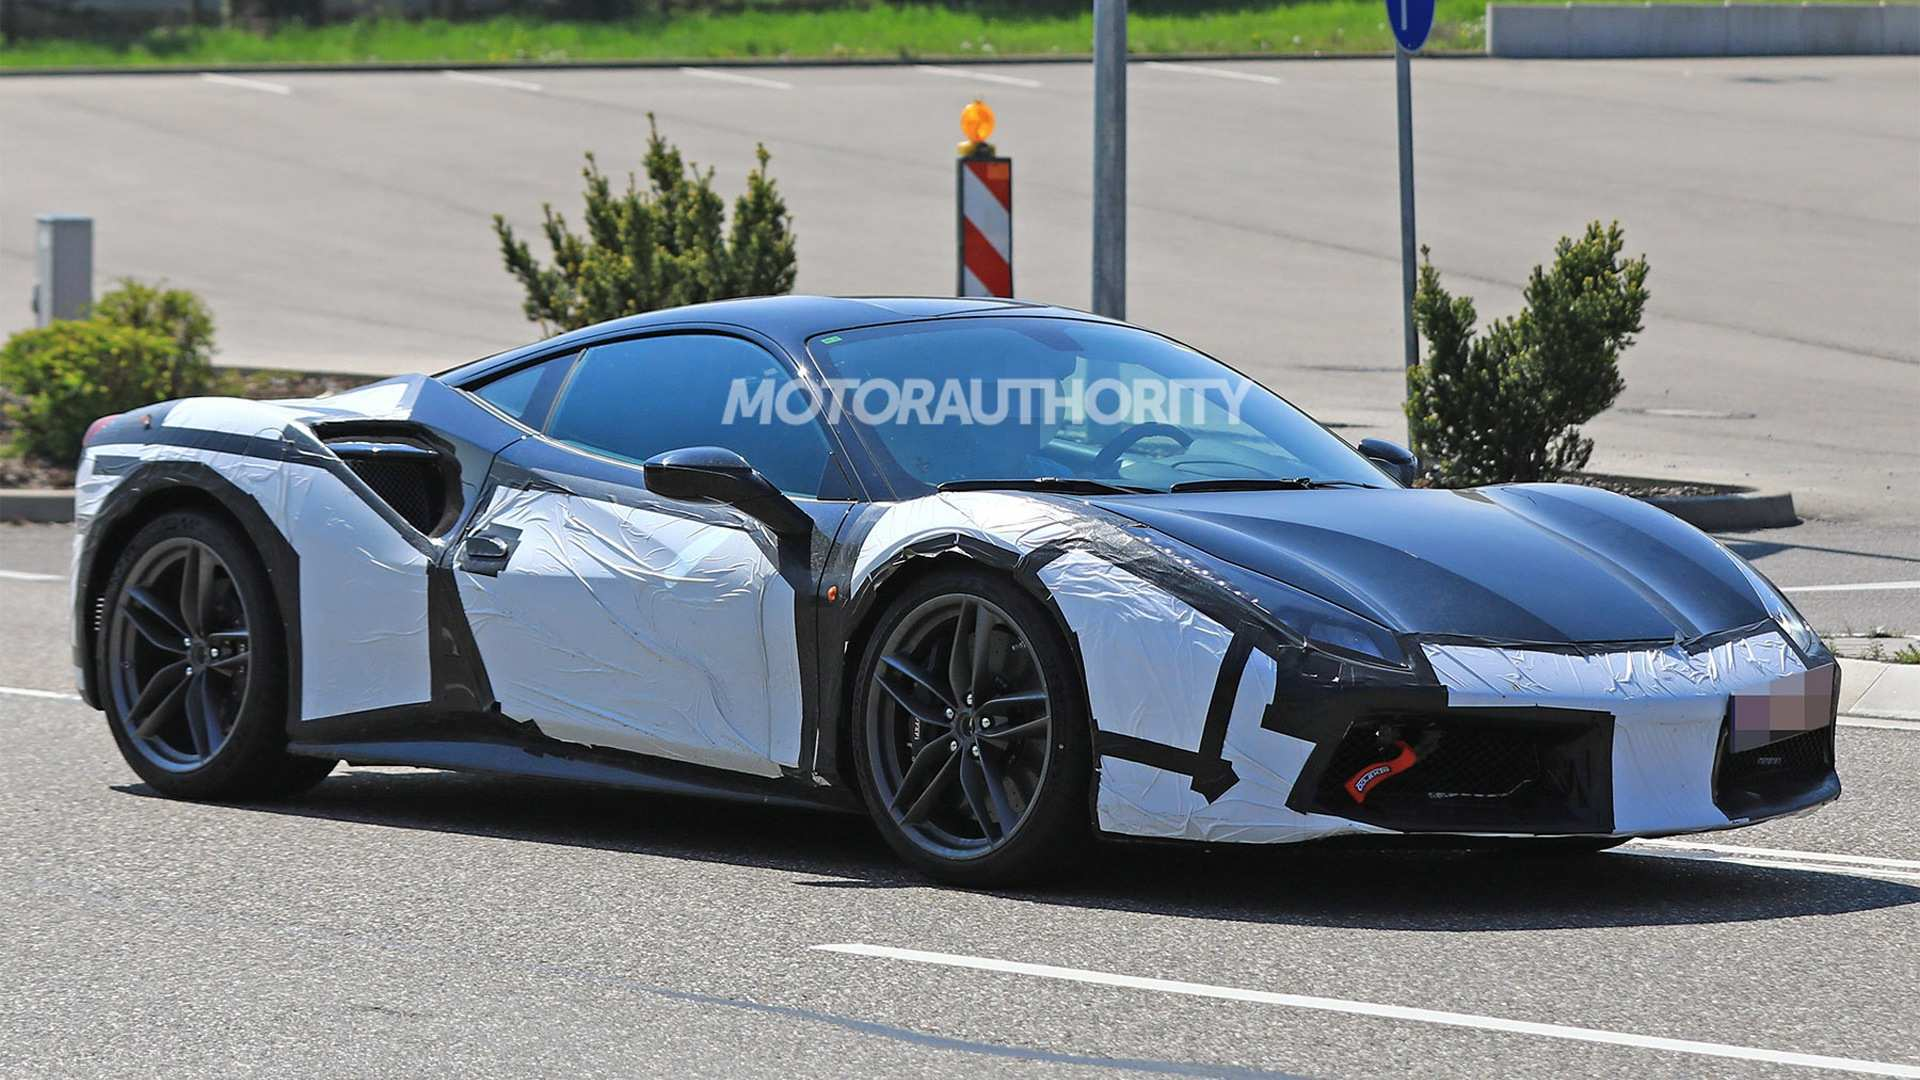 70 Great 2020 Ferrari Models Speed Test with 2020 Ferrari Models